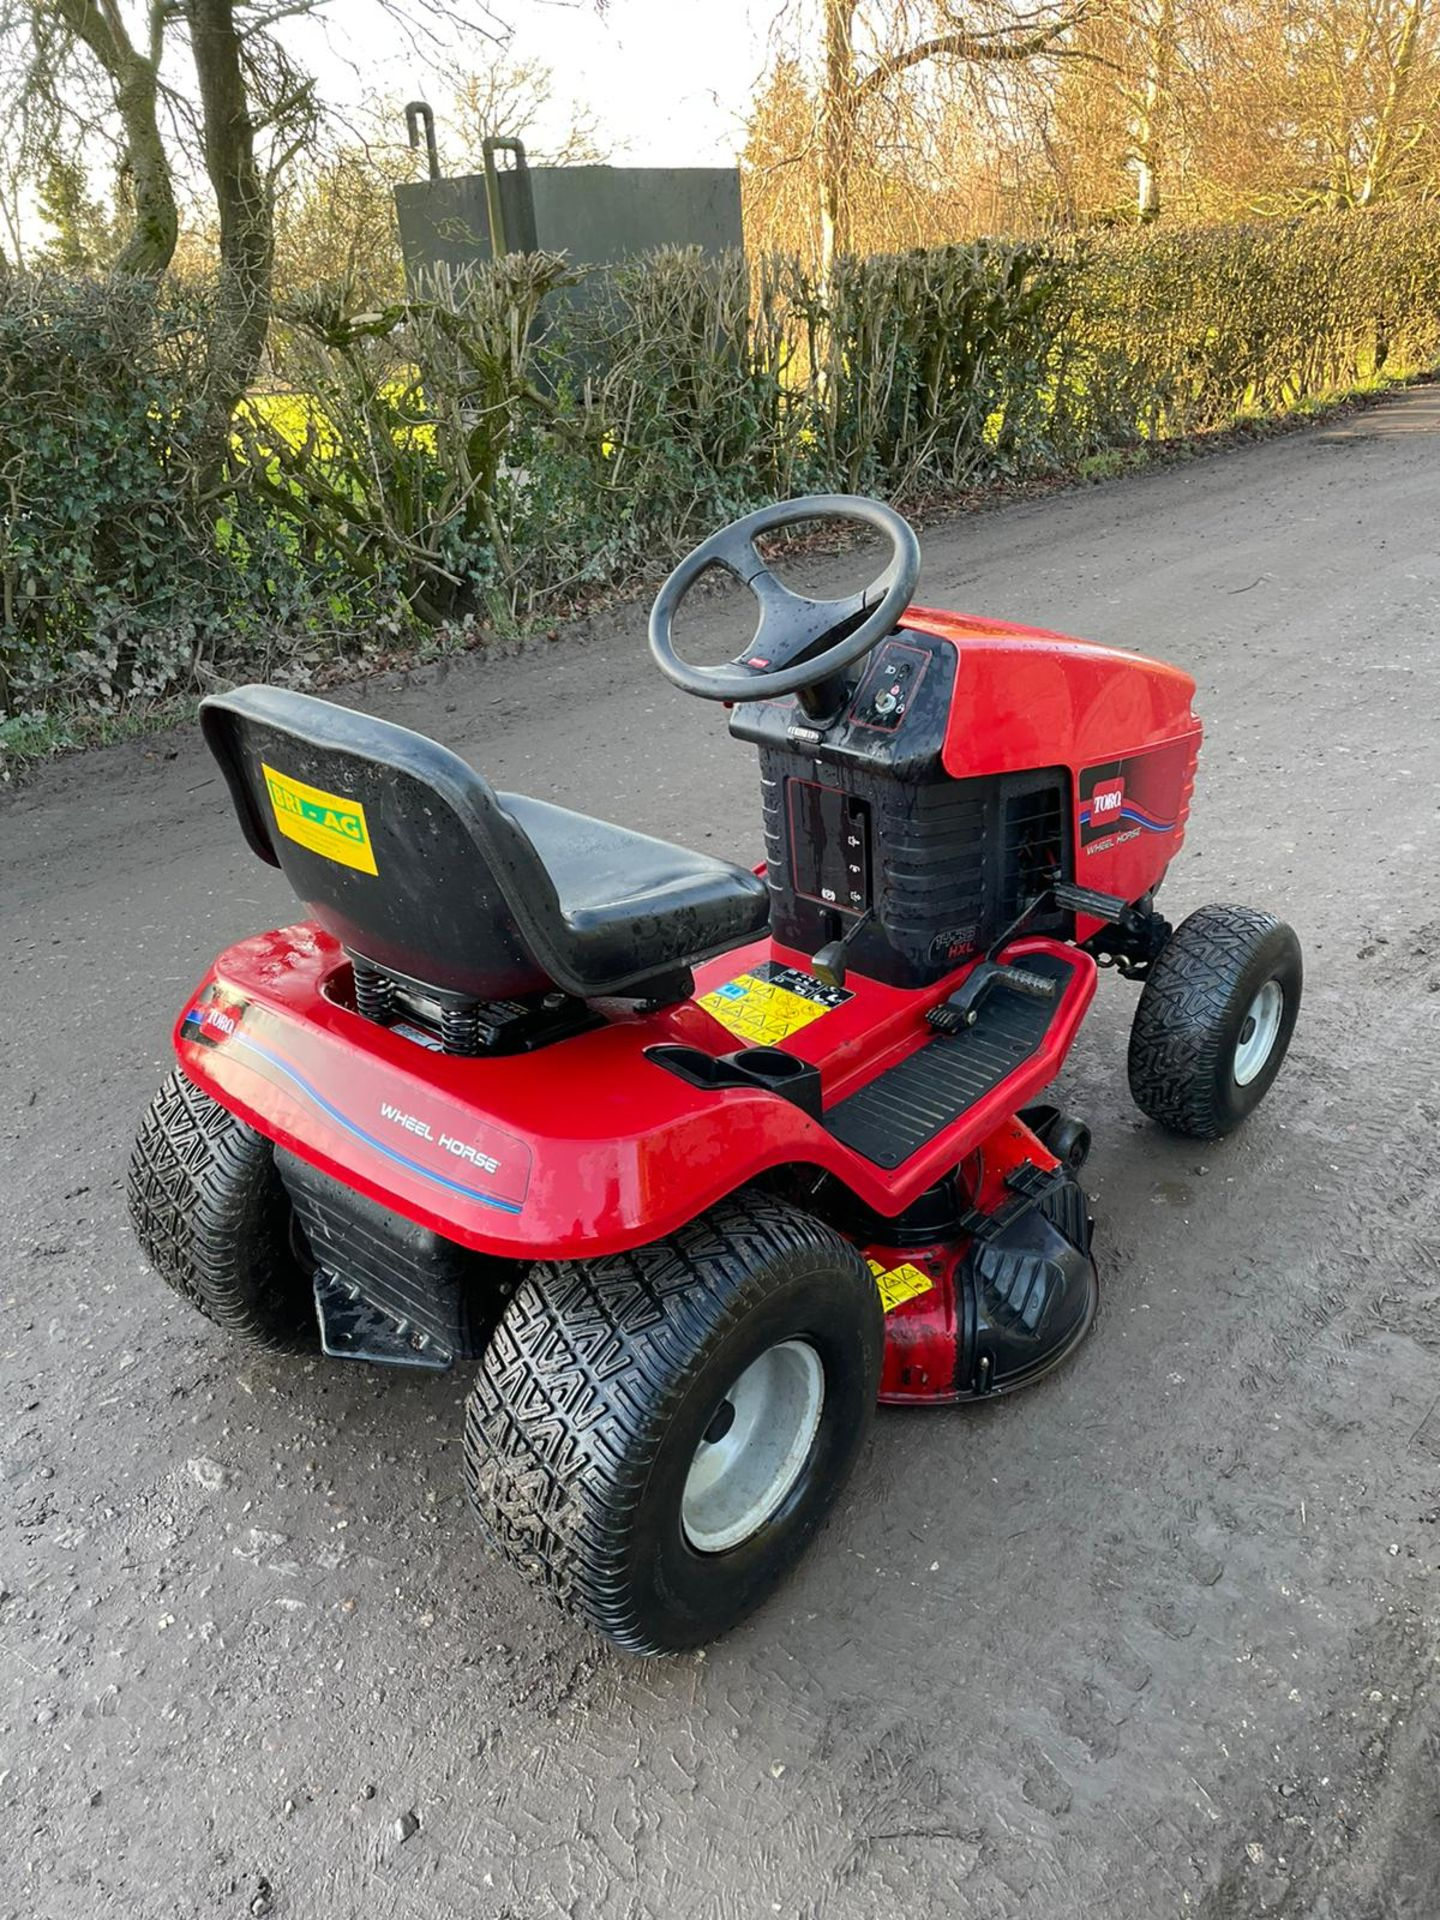 TORO 14-38 HXL RIDE ON MOWER, RUNS, DRIVES AND CUTS, CLEAN MACHINE *NO VAT* - Image 4 of 6